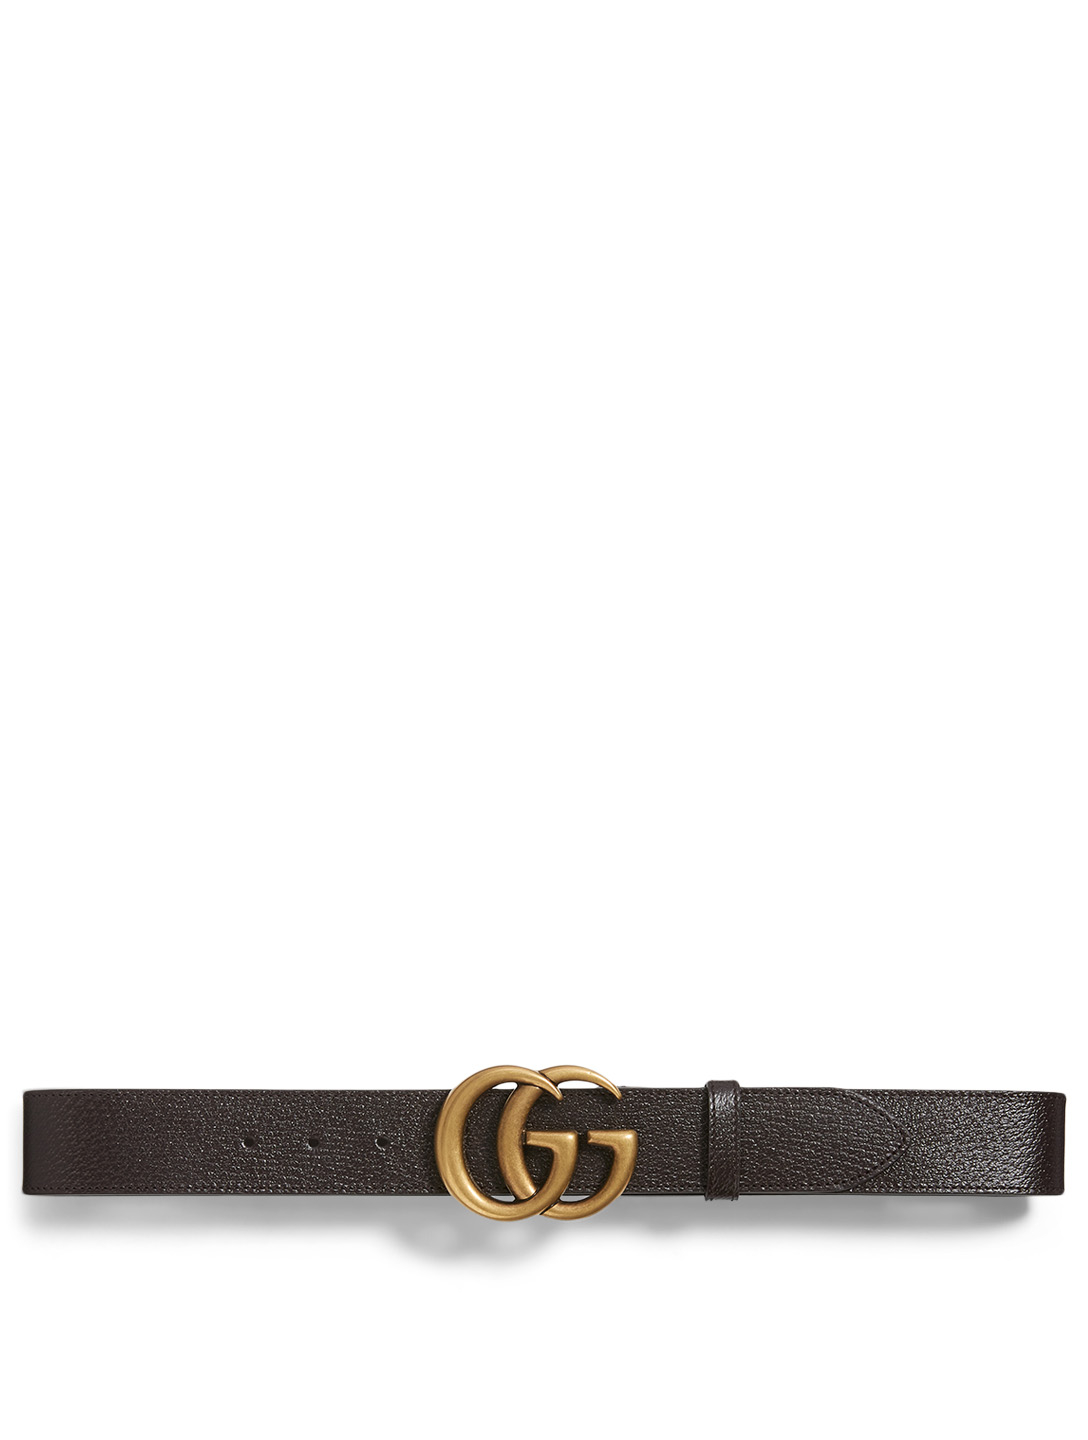 GUCCI Leather Belt With Double G Buckle Men's Brown